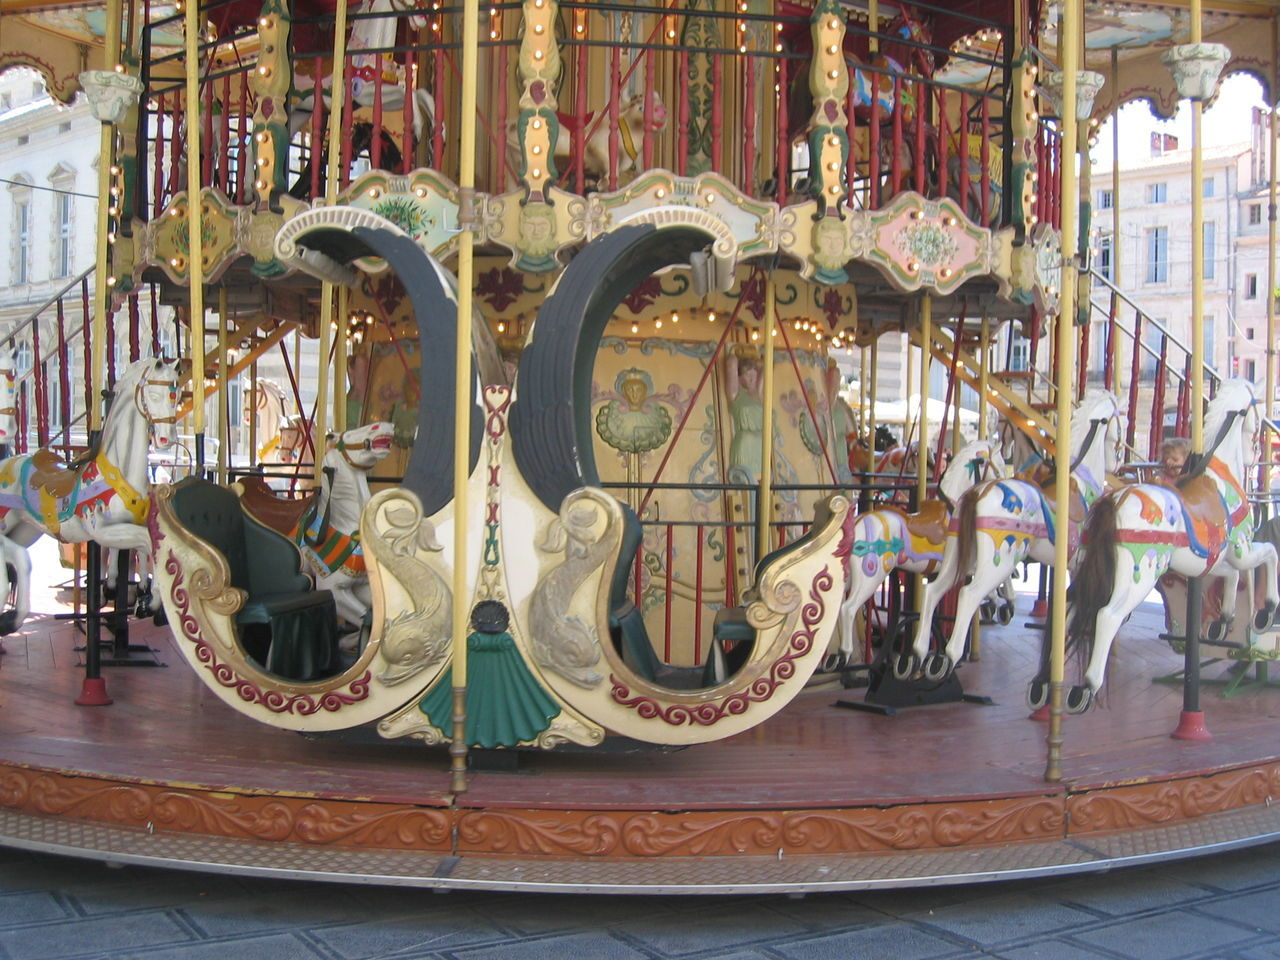 amusement park, amusement park ride, carousel, arts culture and entertainment, no people, representation, animal representation, art and craft, carousel horses, indoors, absence, creativity, multi colored, close-up, day, focus on foreground, architecture, illuminated, merry-go-round, ornate